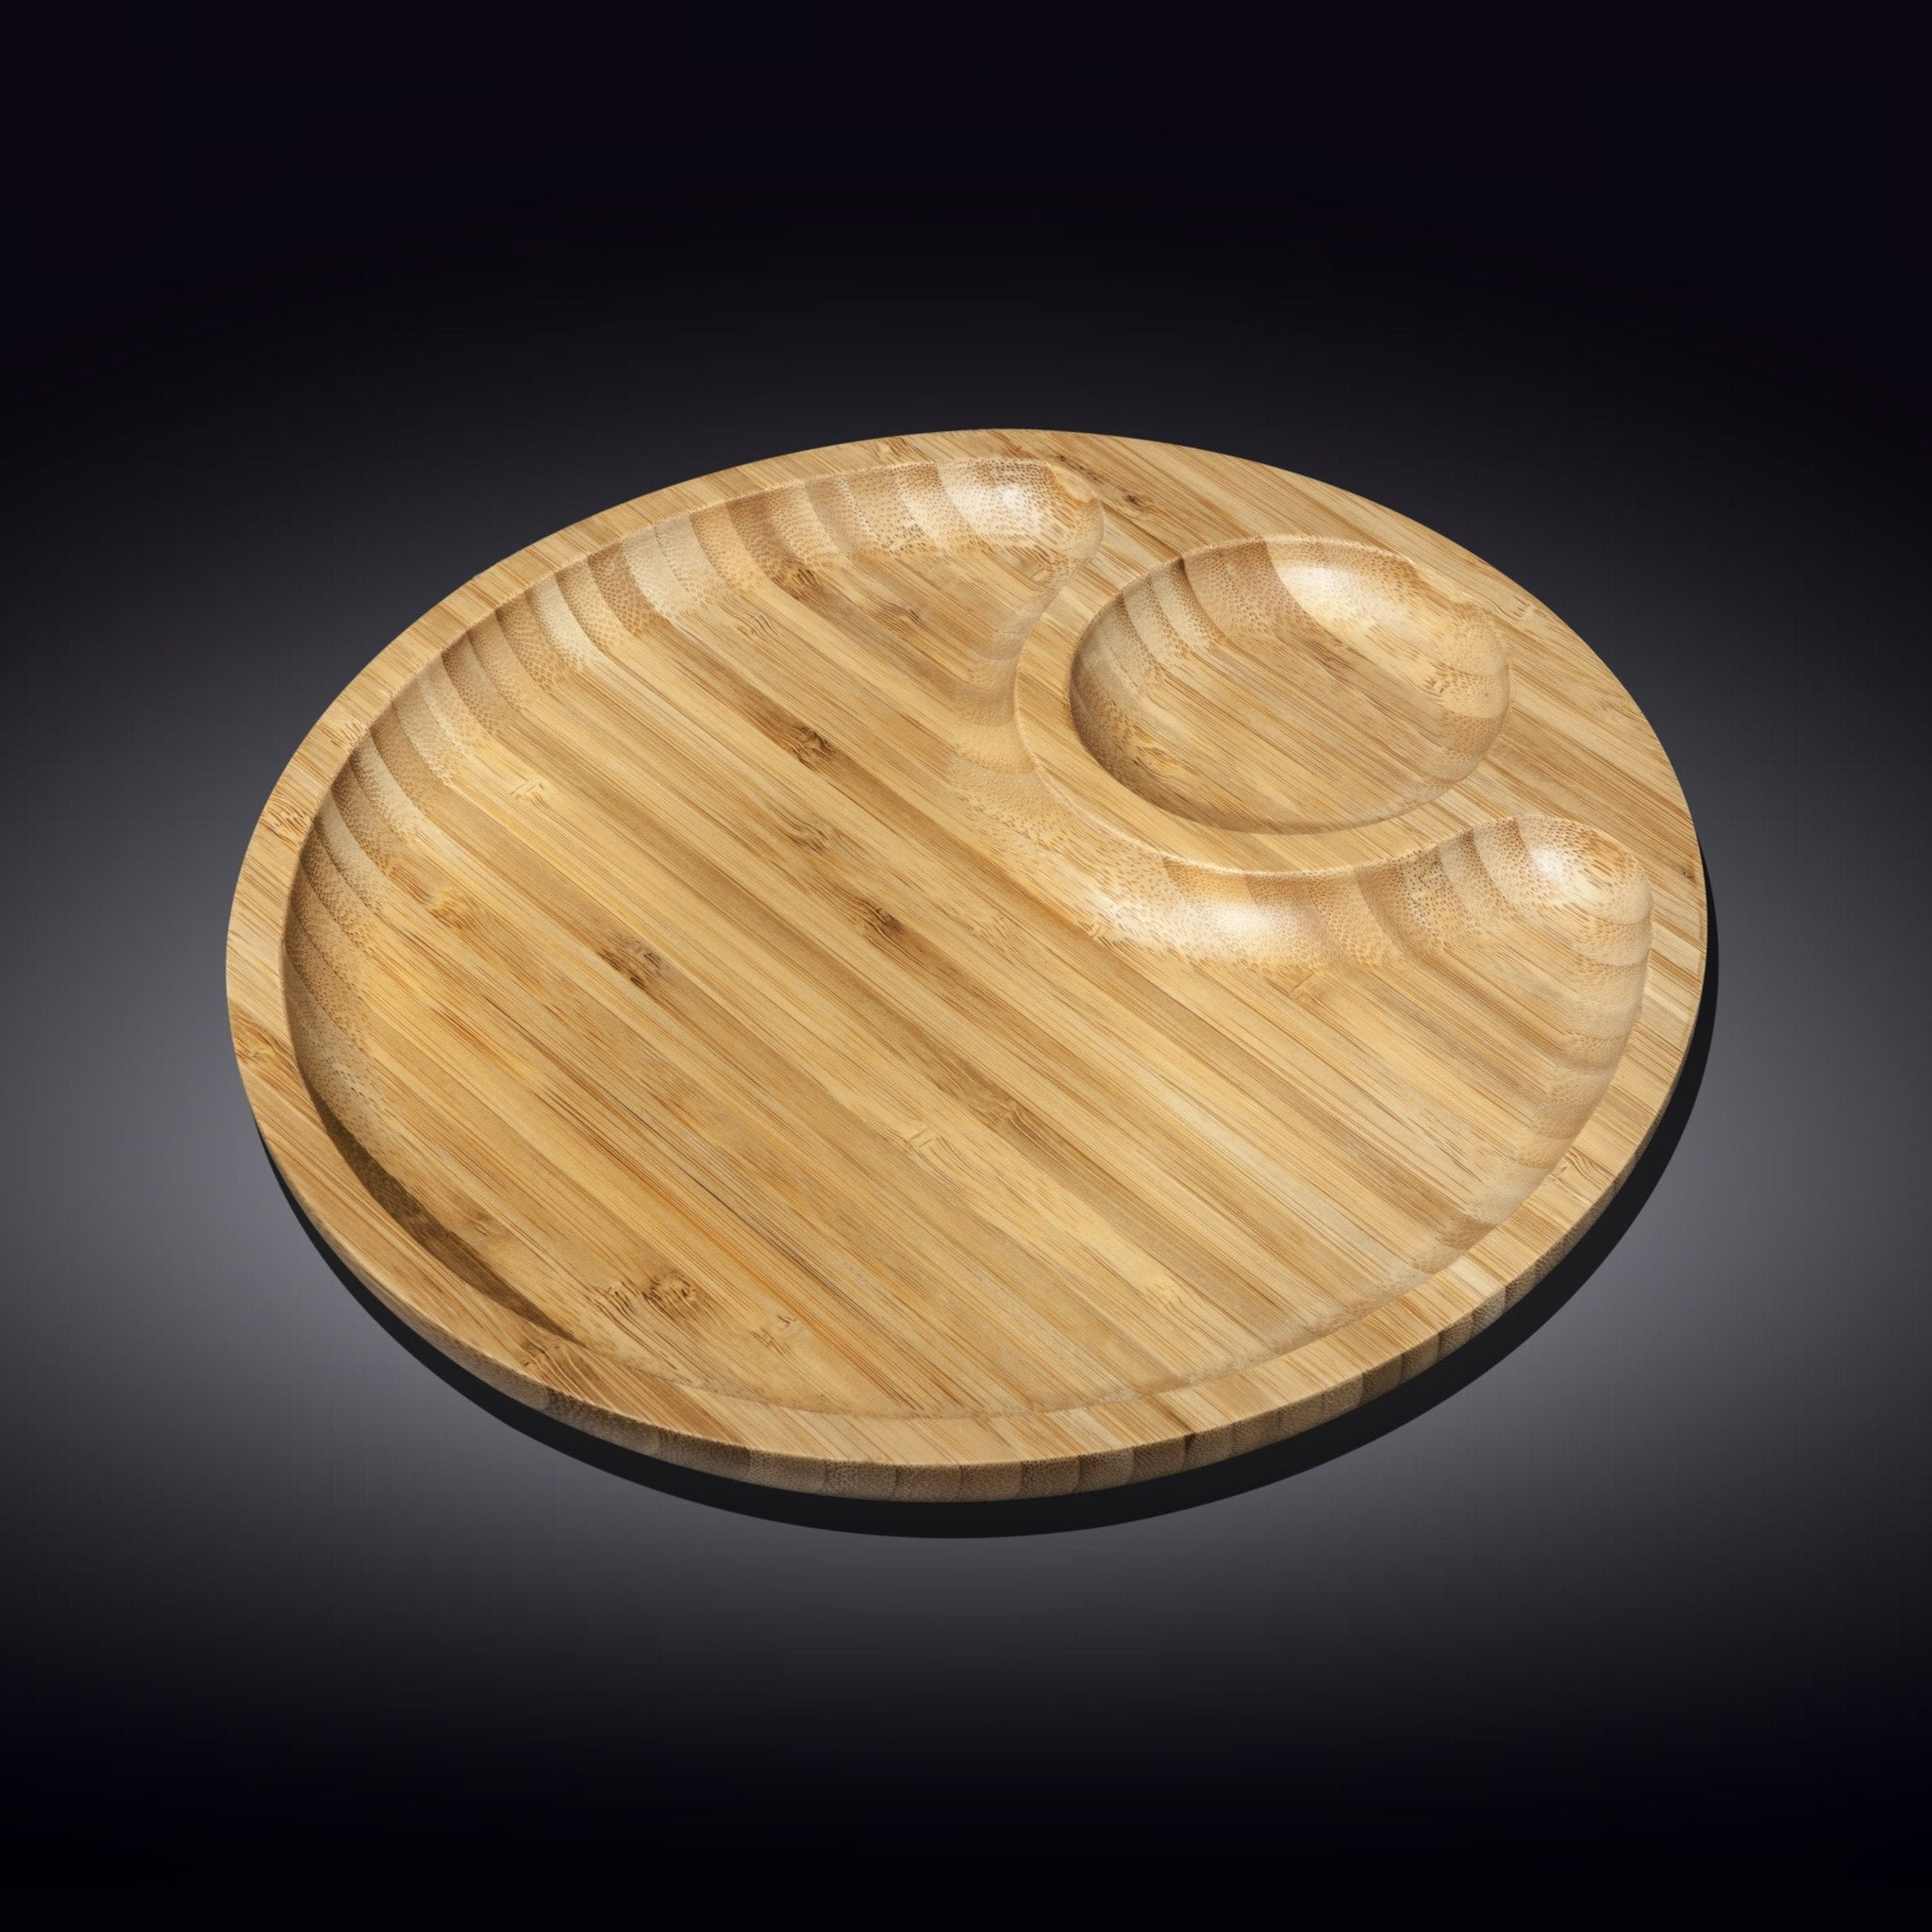 NATURAL BAMBOO 2 SECTION PLATTER 10"